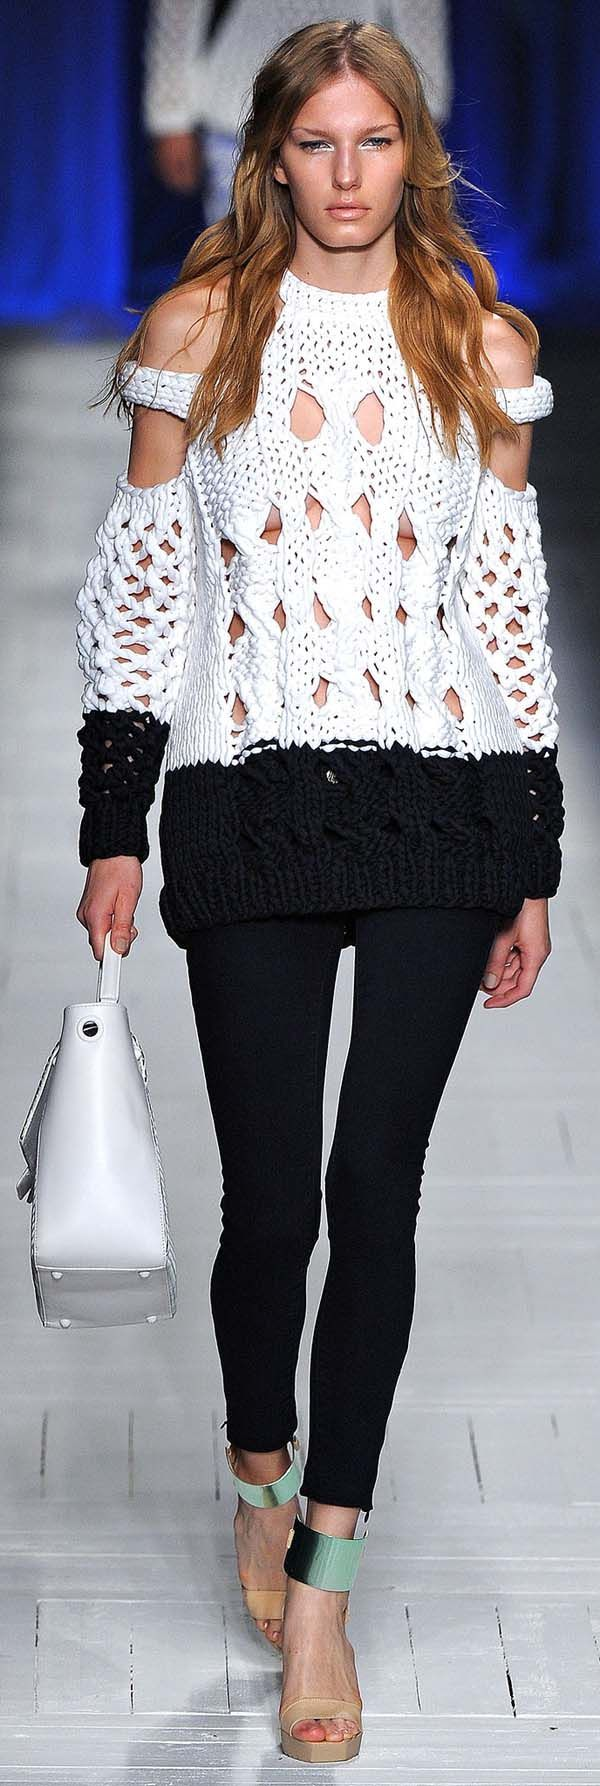 Just Cavalli Spring Summer 2013 Ready to Wear CollectionBlugirl Fall 2012 keeping it real